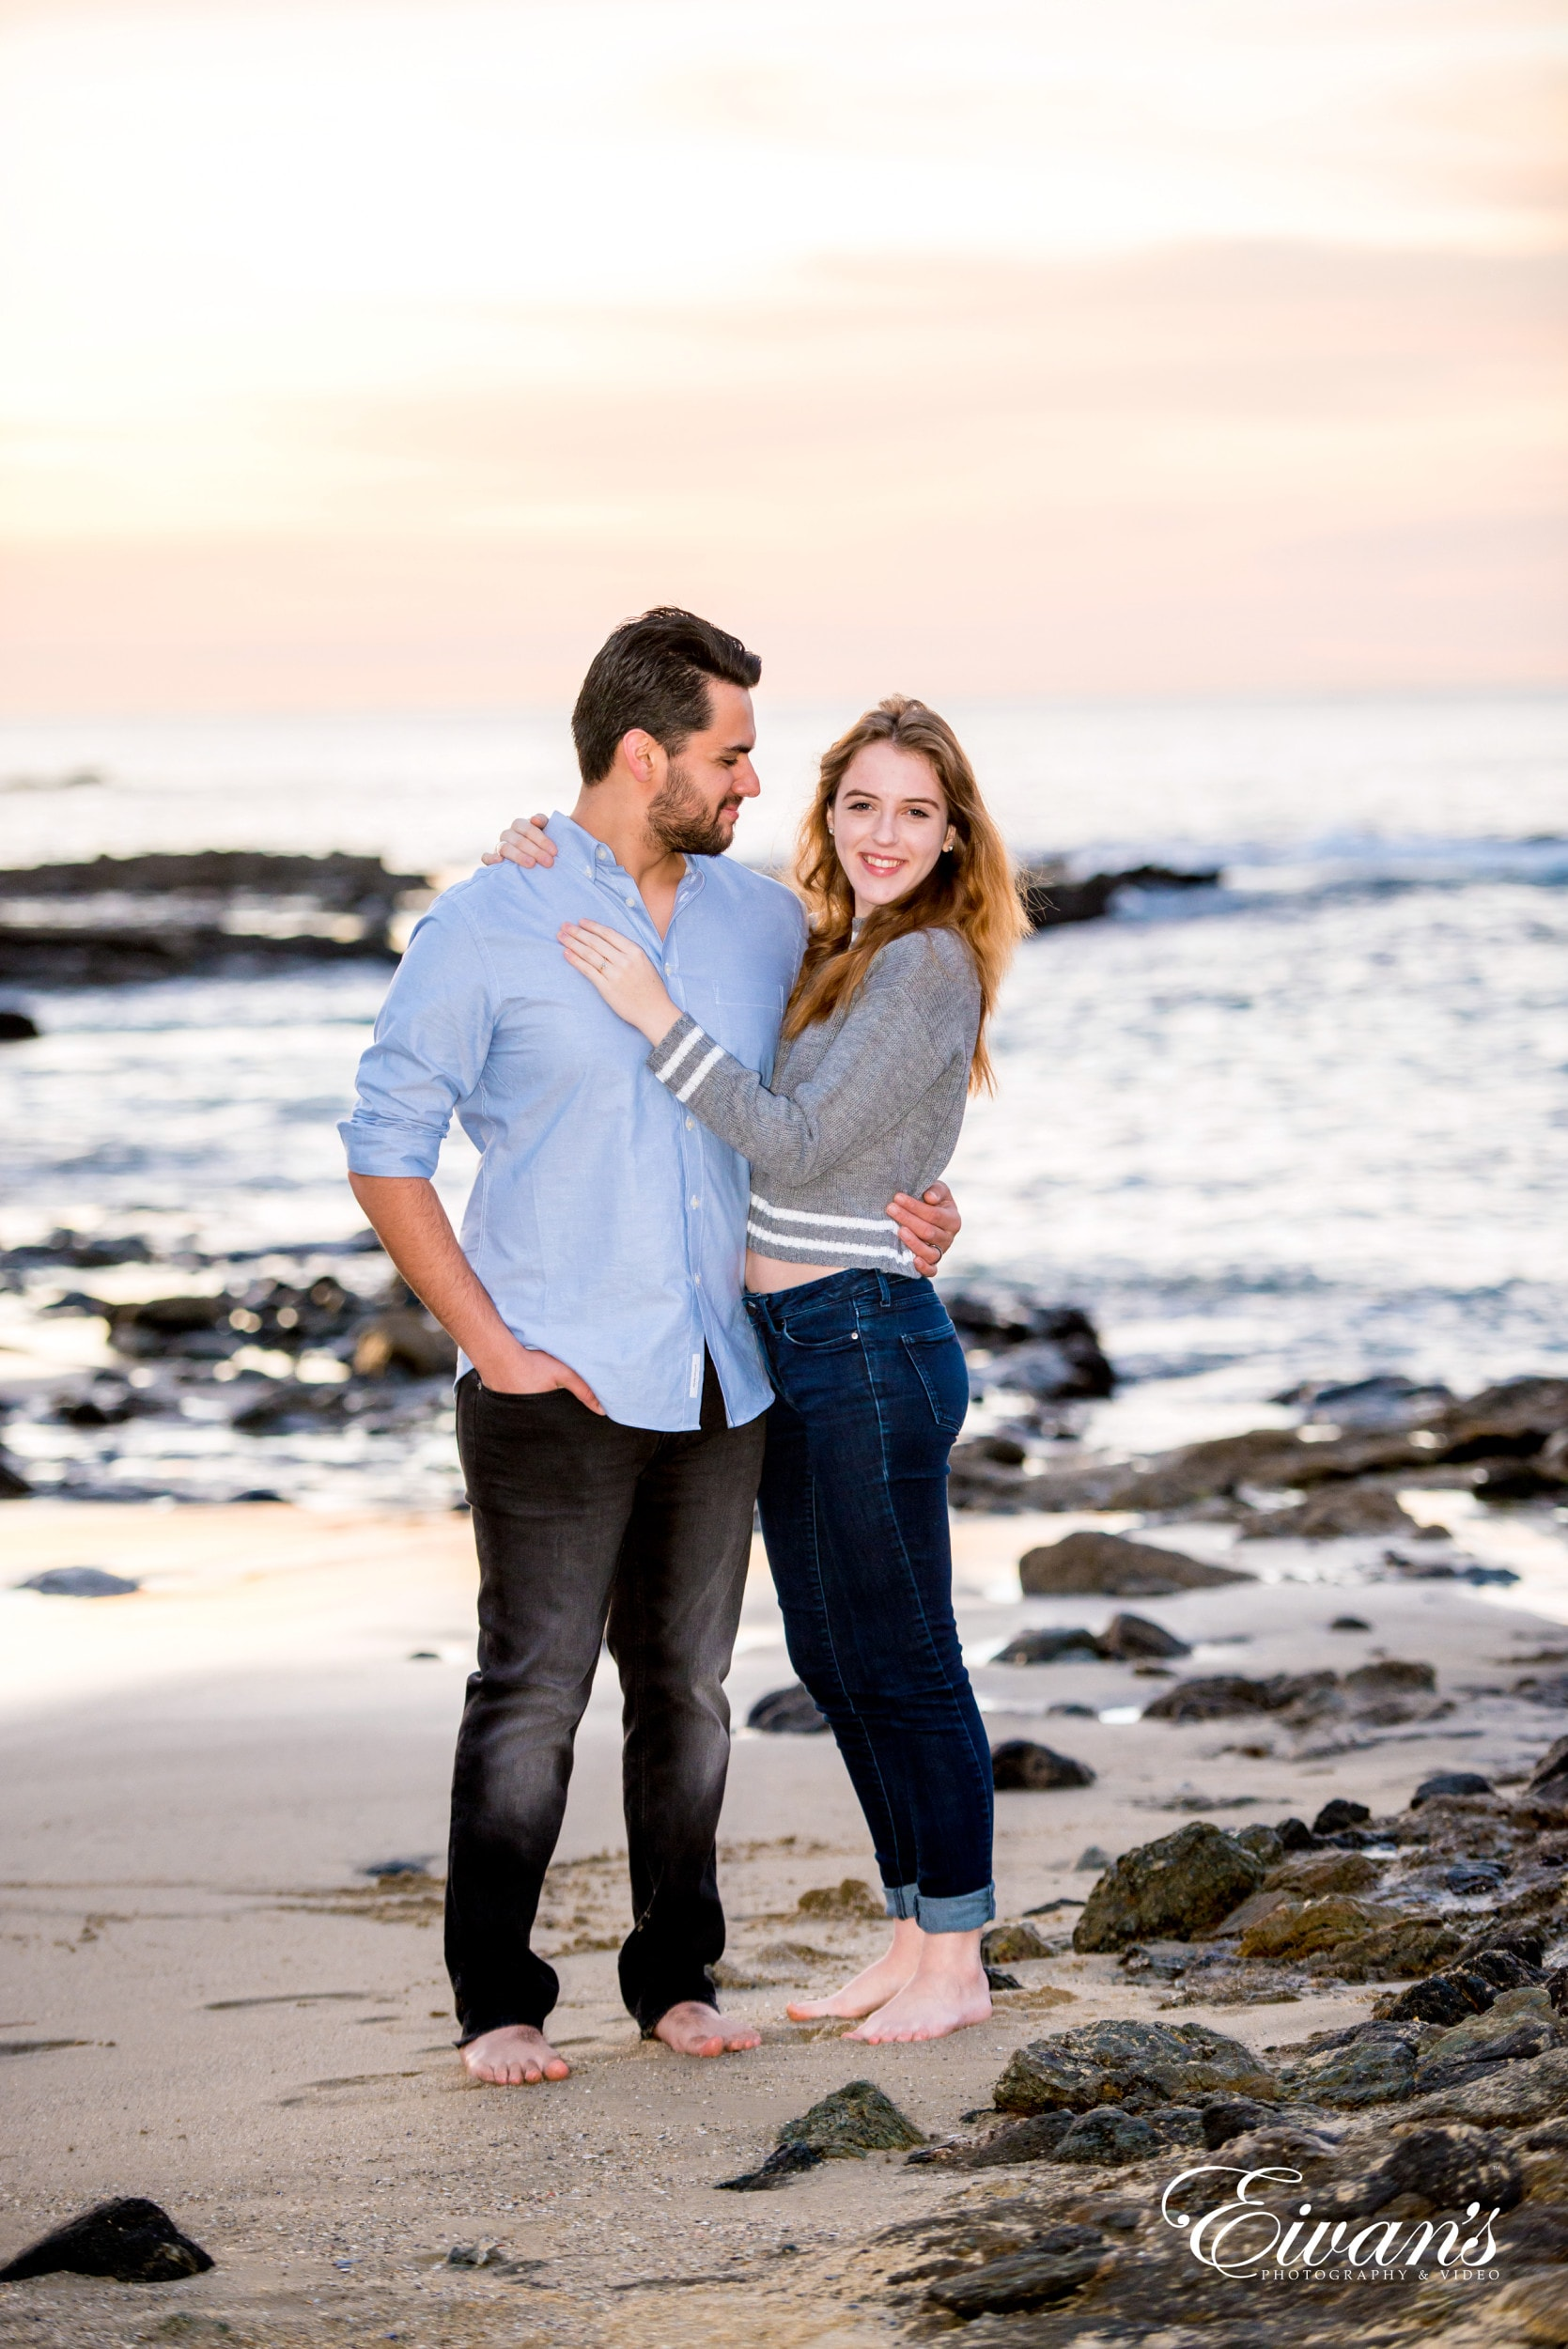 man in blue dress shirt hugging woman in white long sleeve shirt on beach during daytime